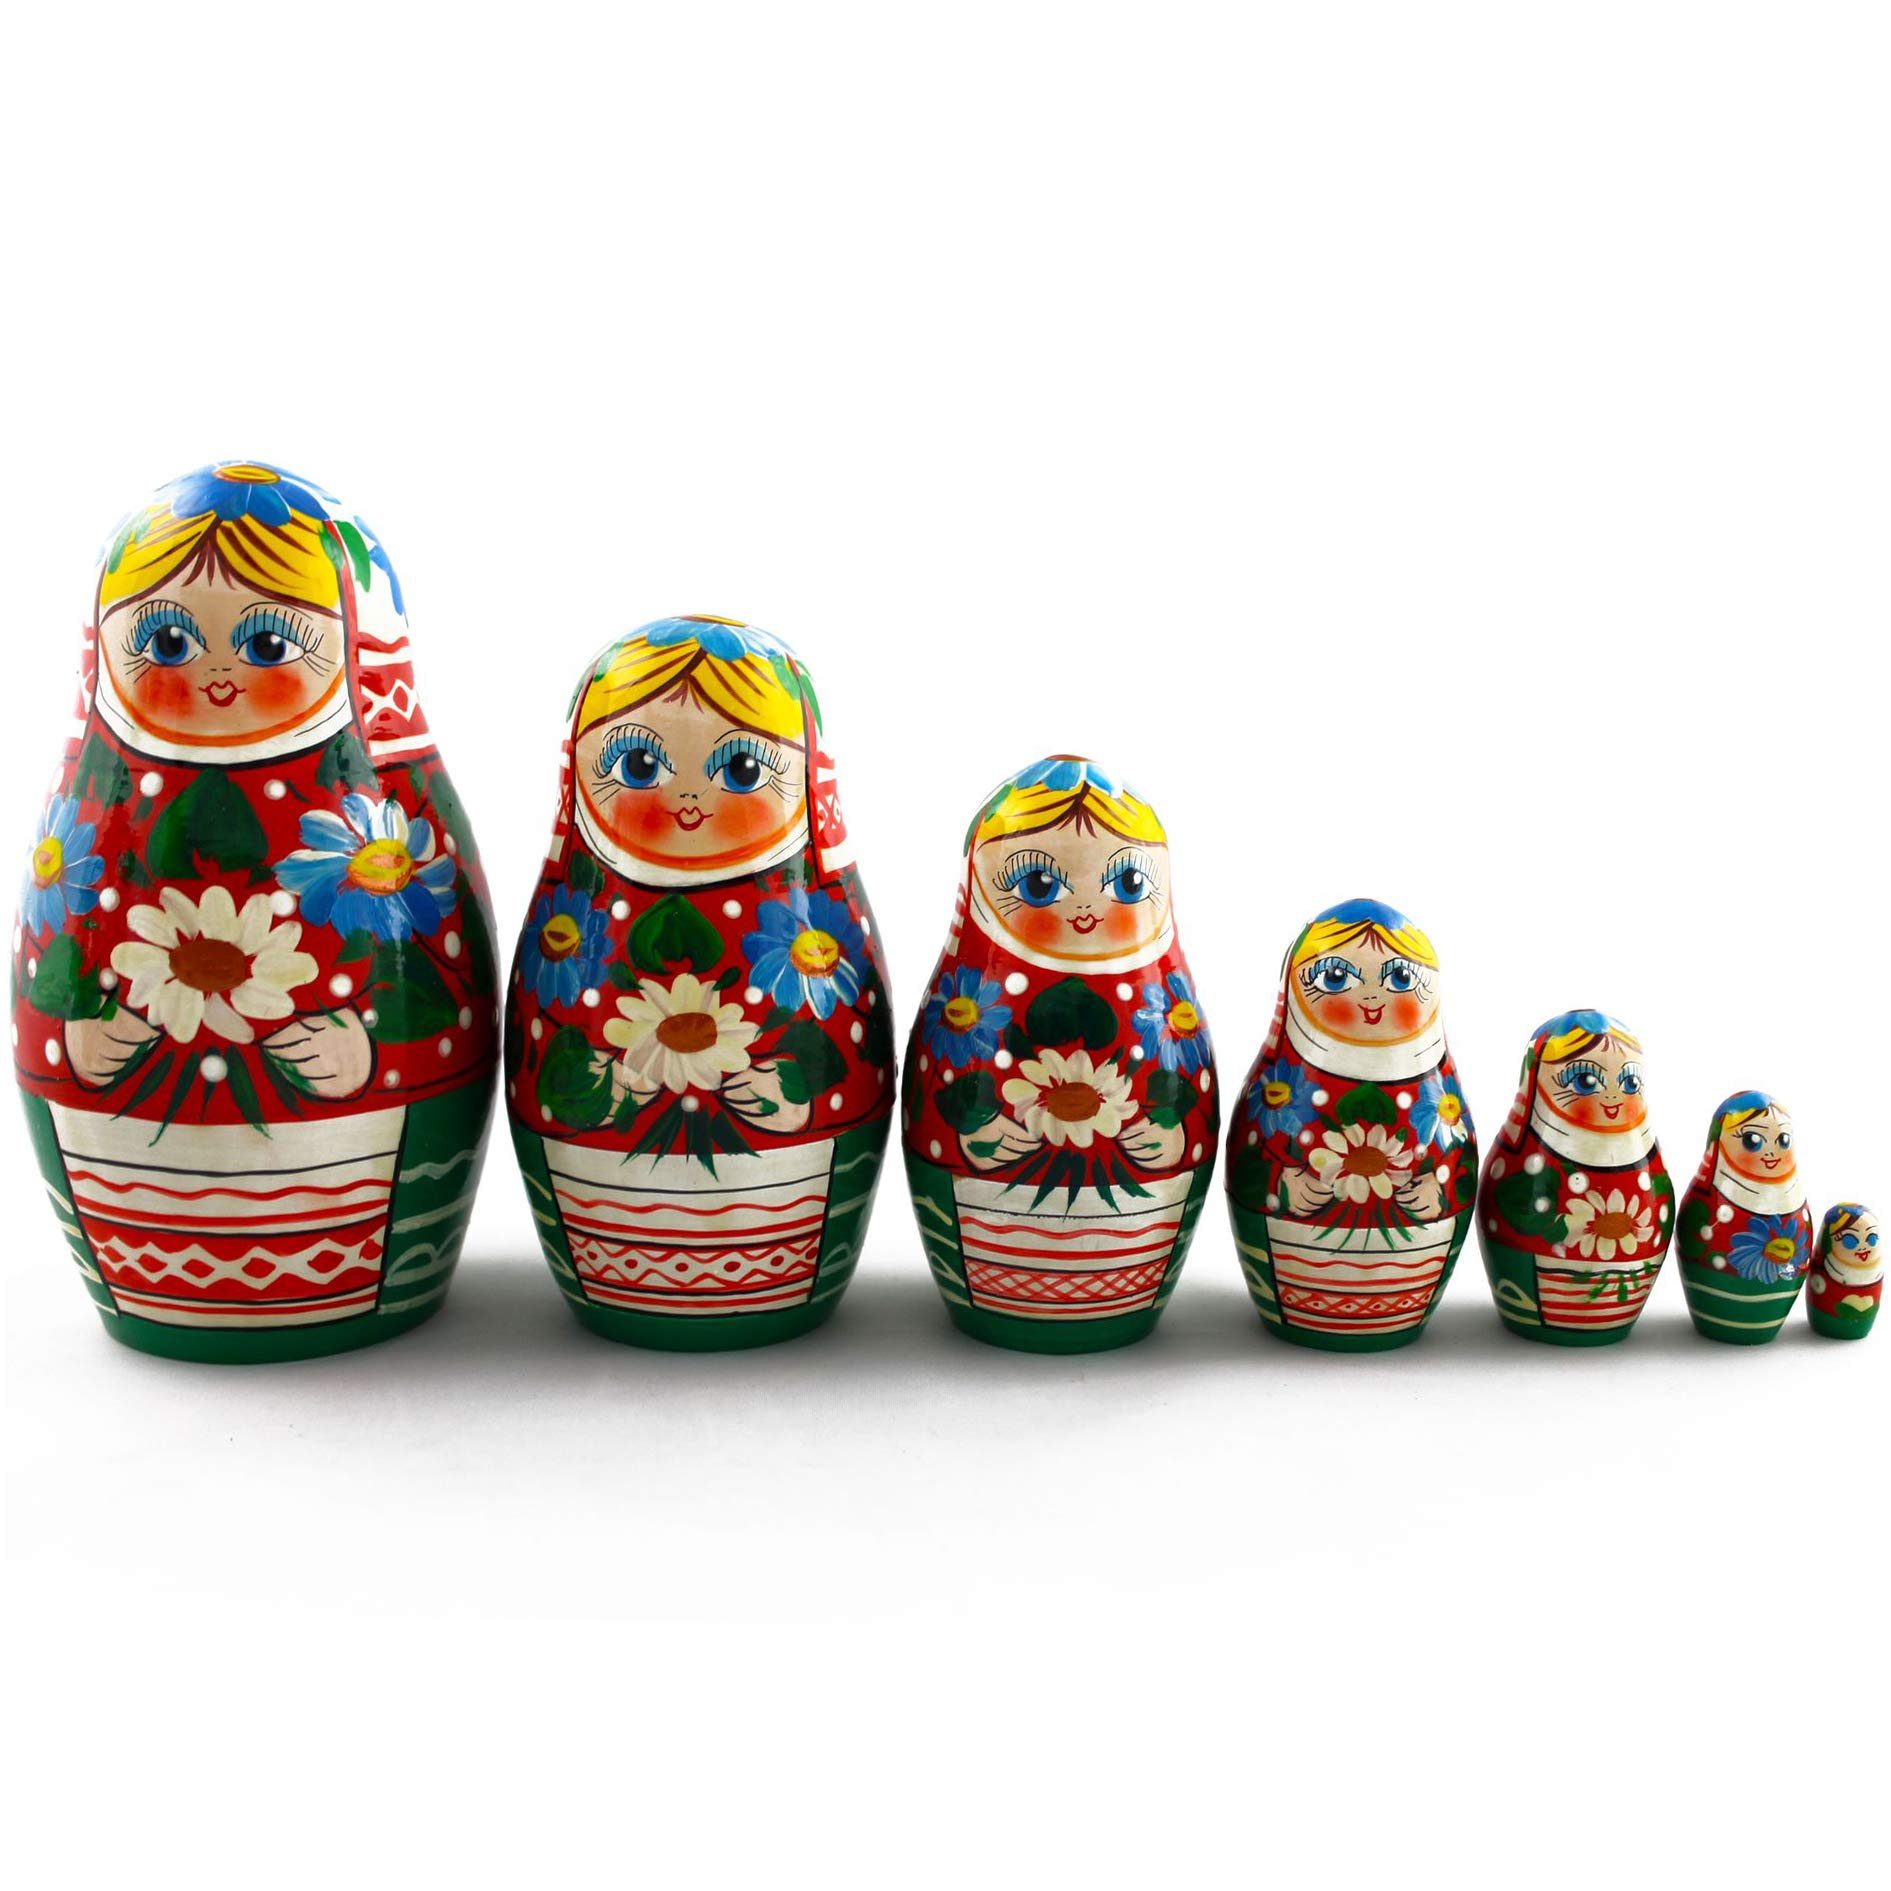 Russian Nesting Dolls - Matryoshka Dolls Belarusian Motives with Flowers Set 7 pcs by MATRYOSHKA&HANDICRAFT